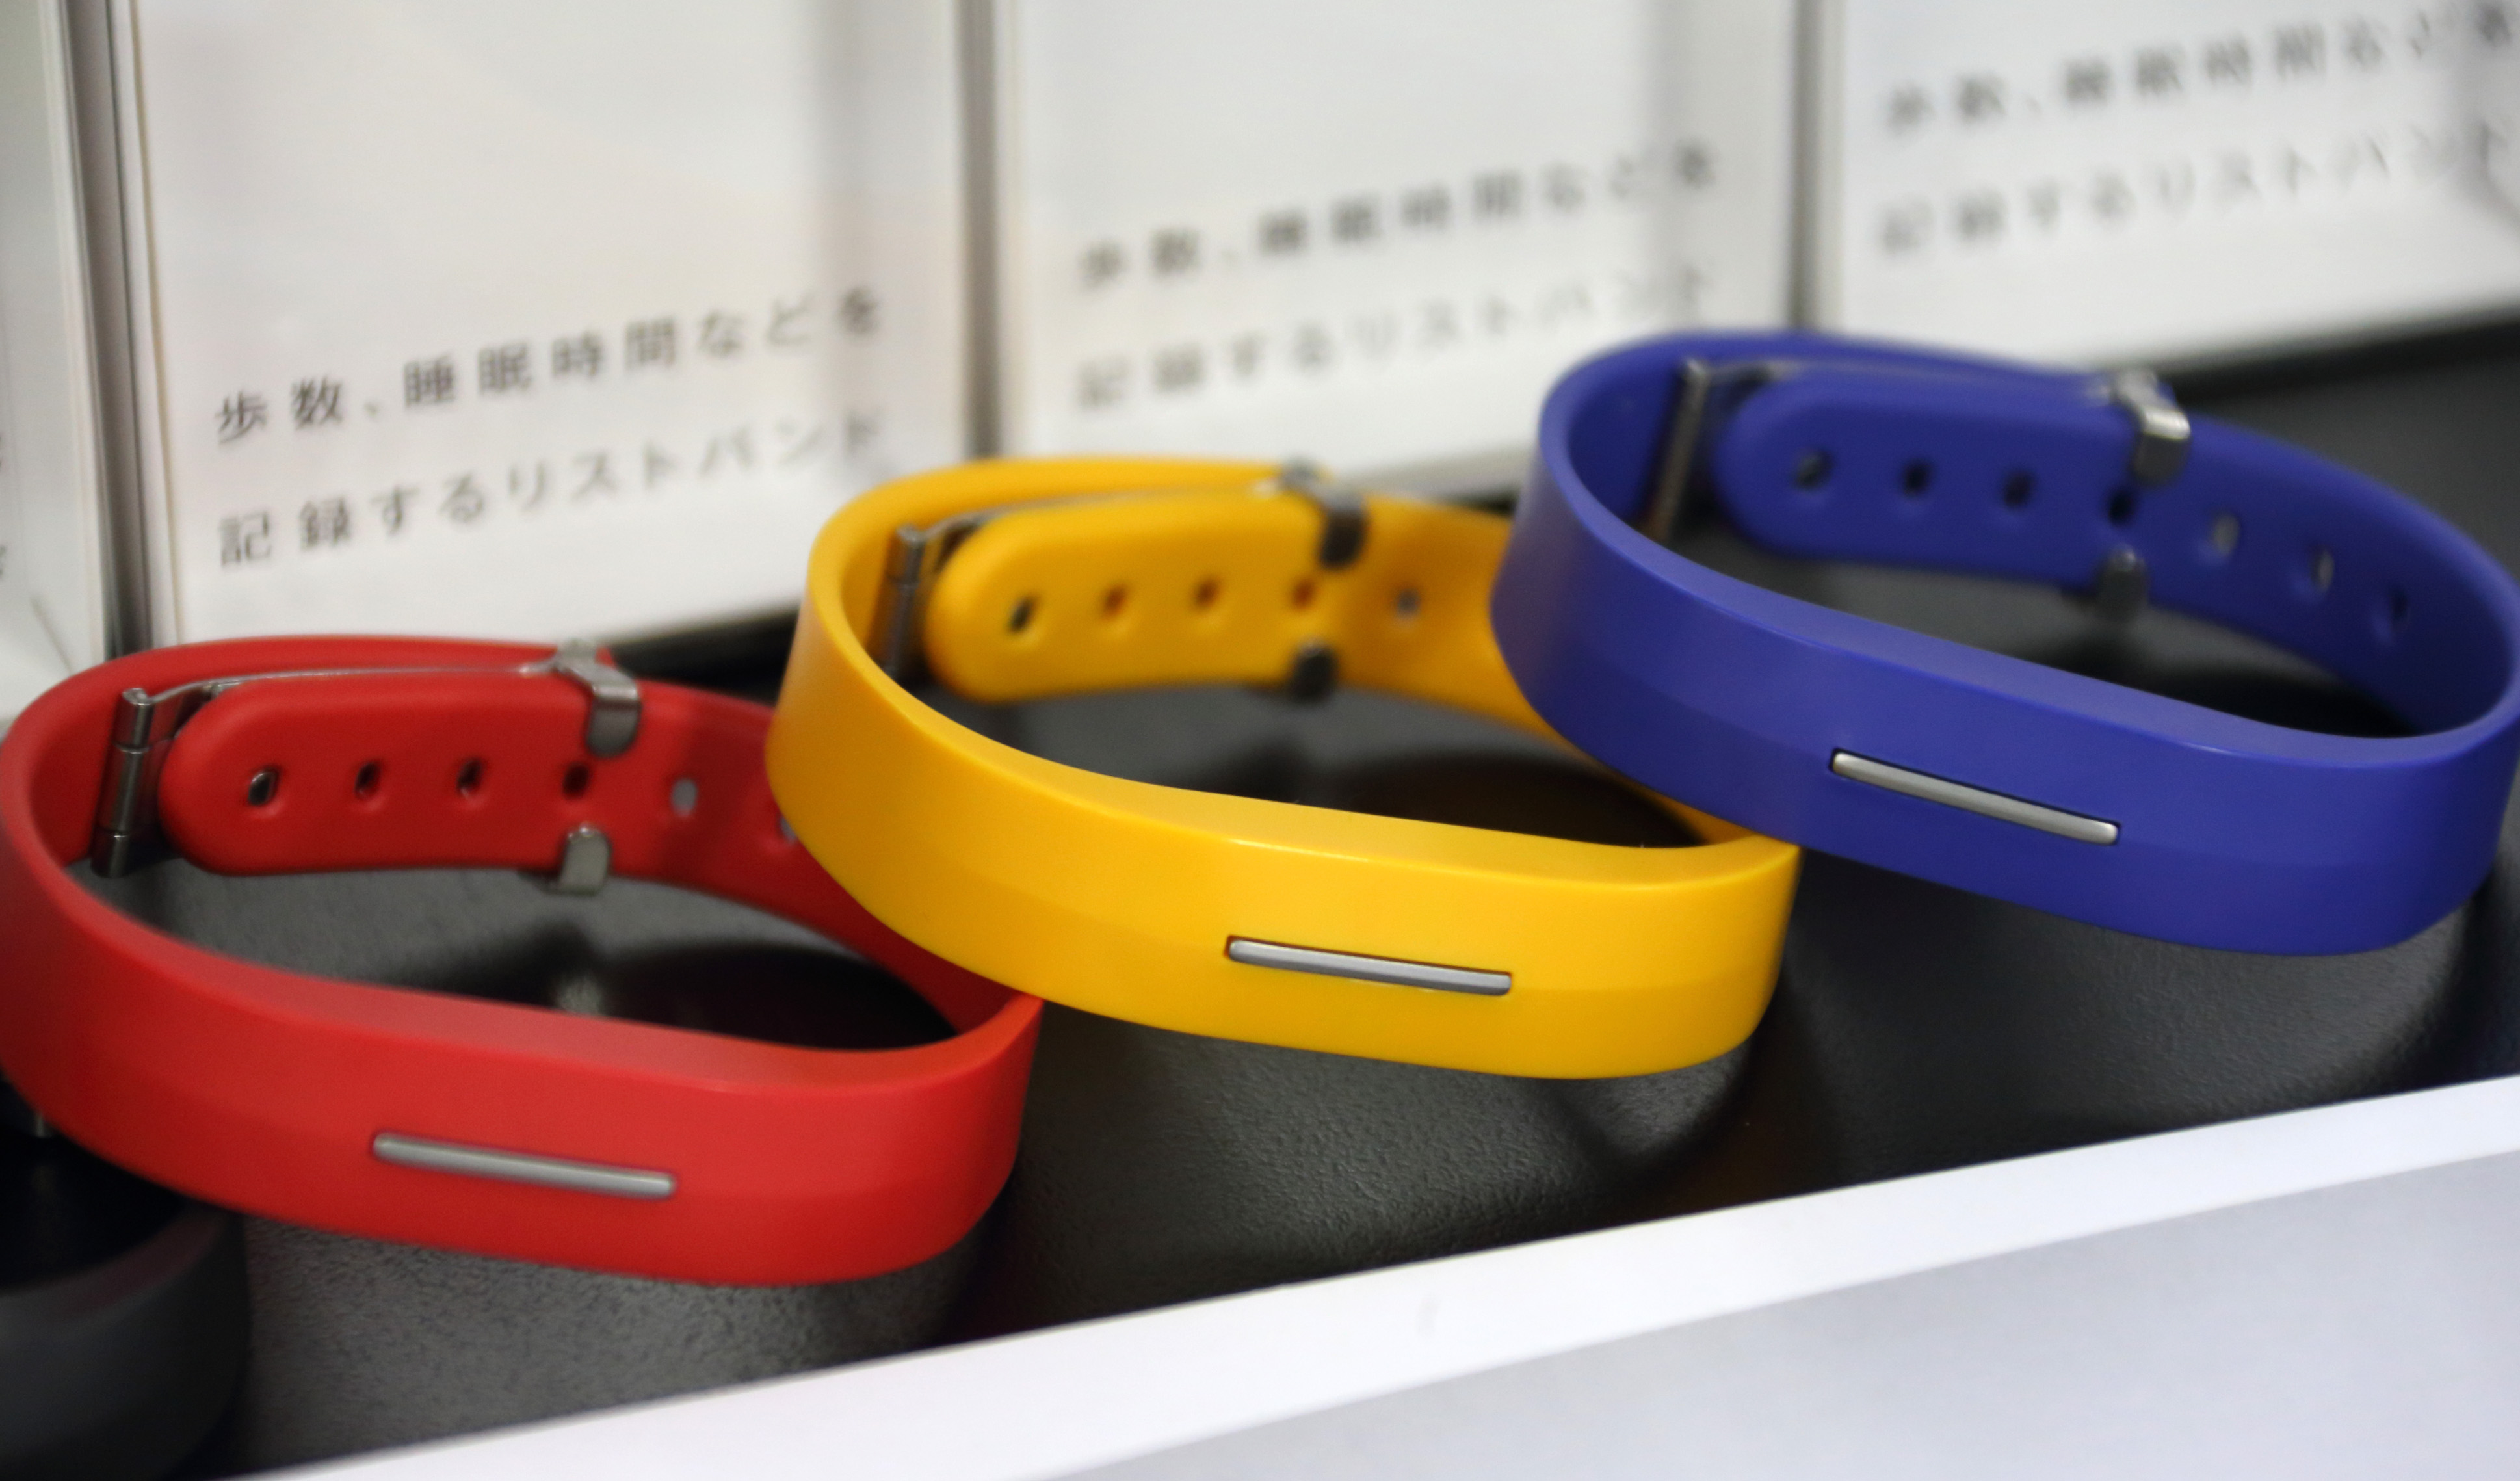 Docomo Healthcare Inc.'s Moveband, a wearable technology device for easy recording and tracking of health data, manufactured by Toshiba Corp., are displayed during a news conference in Kawasaki City, Kanagawa Prefecture, Japan, on Thursday, Feb. 20, 2014.